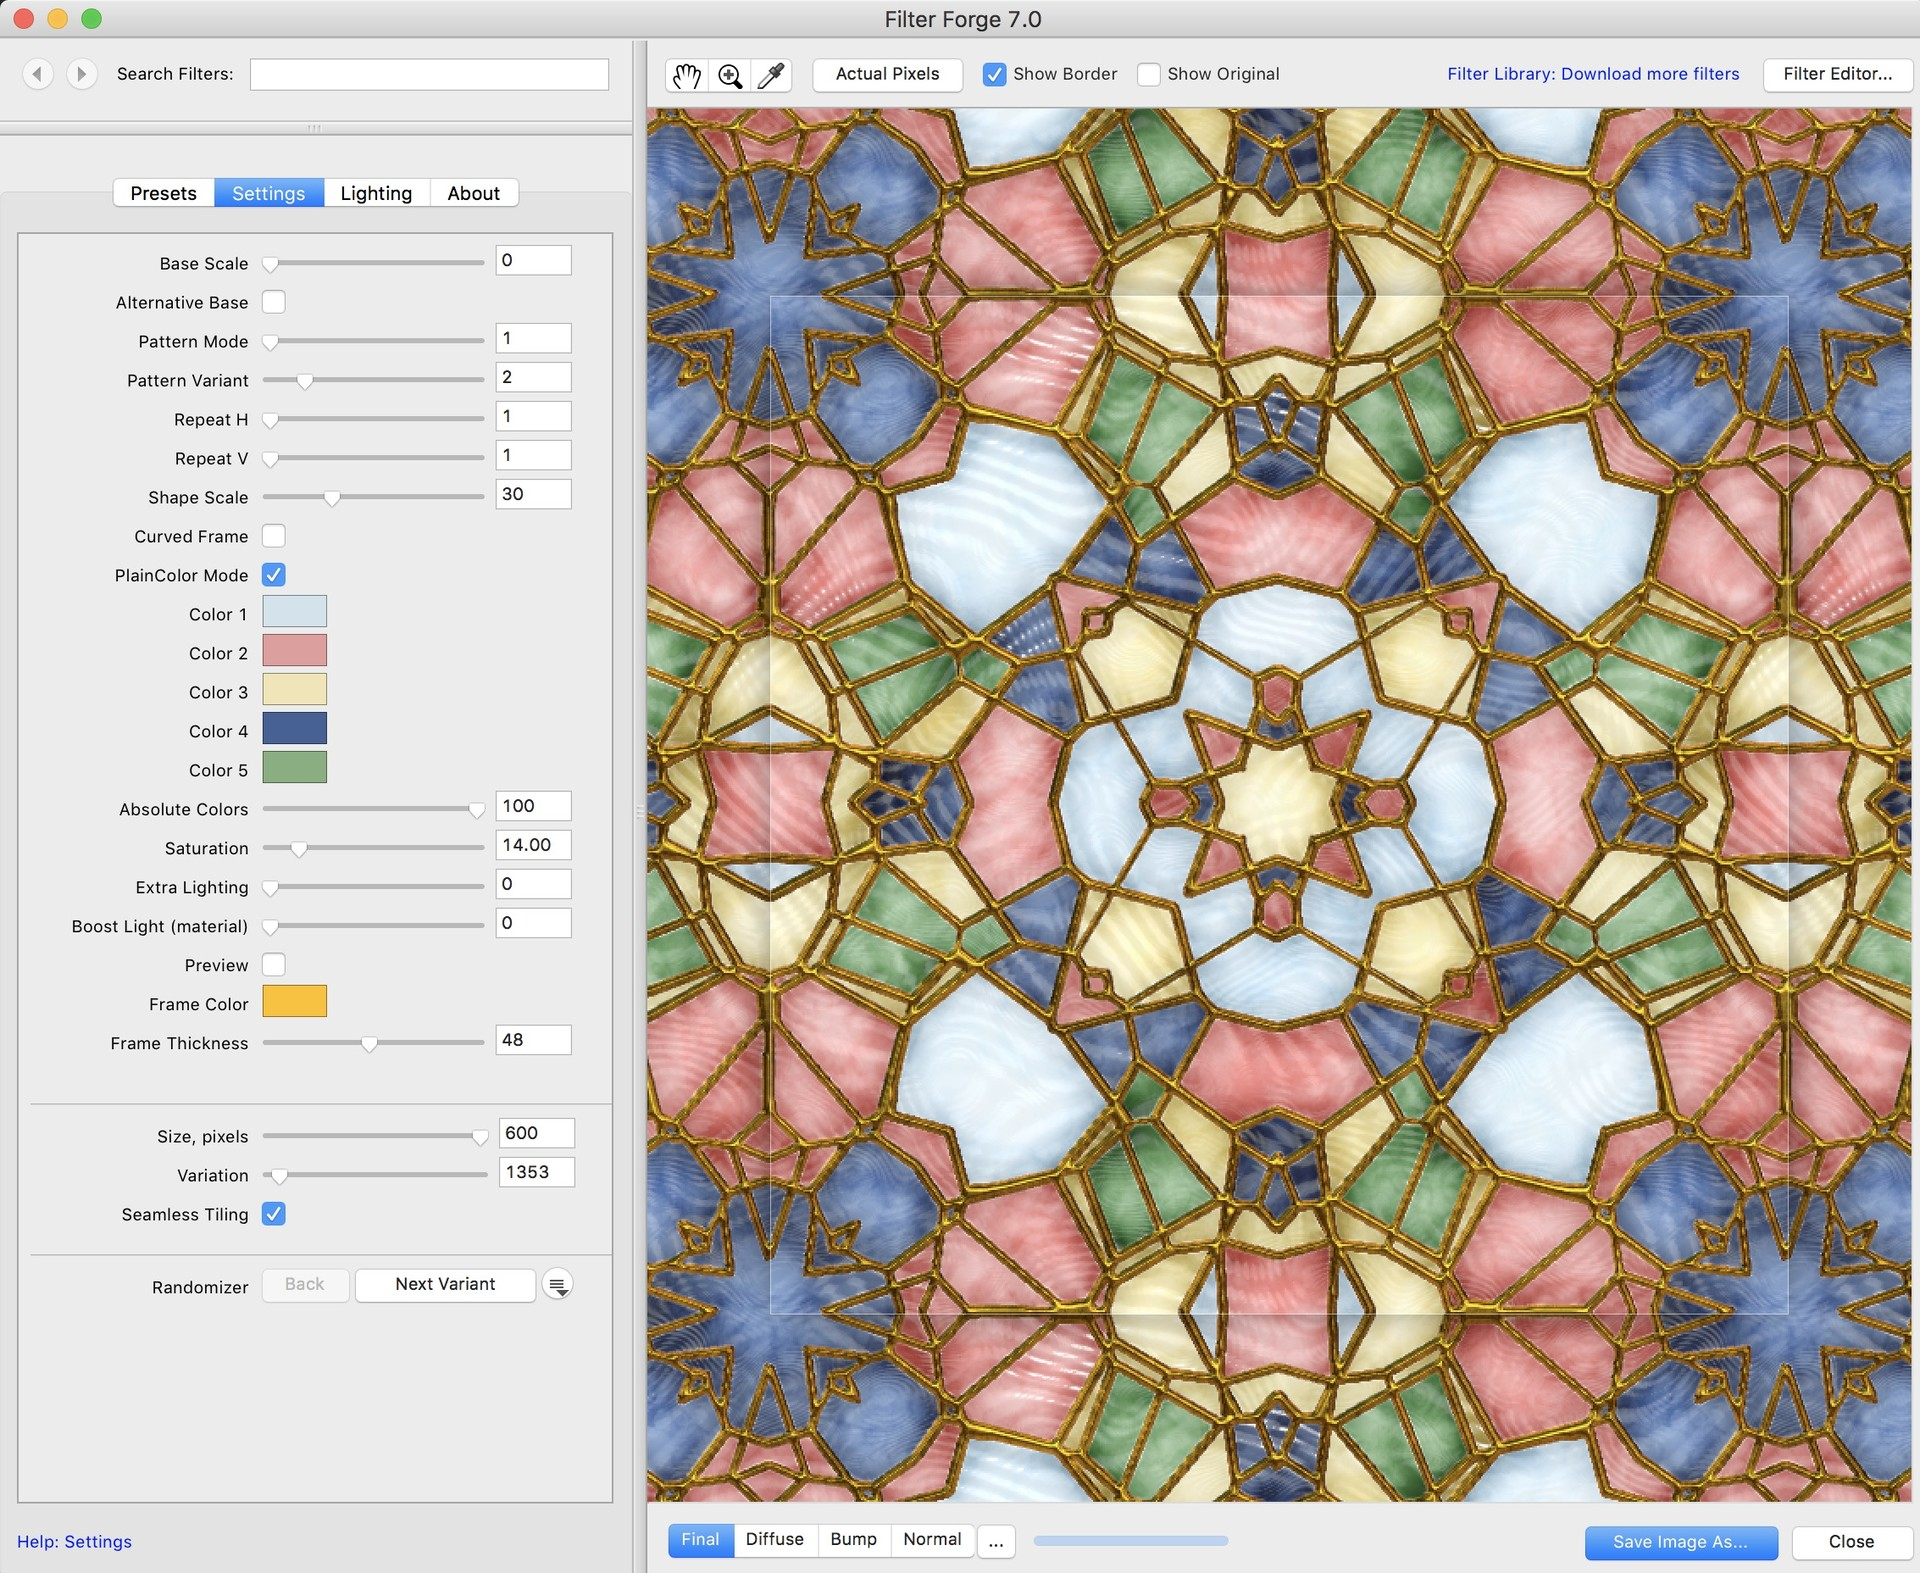 I made a simple stained glass generator a few years ago in FilterForge. So I decided to use that for this project.